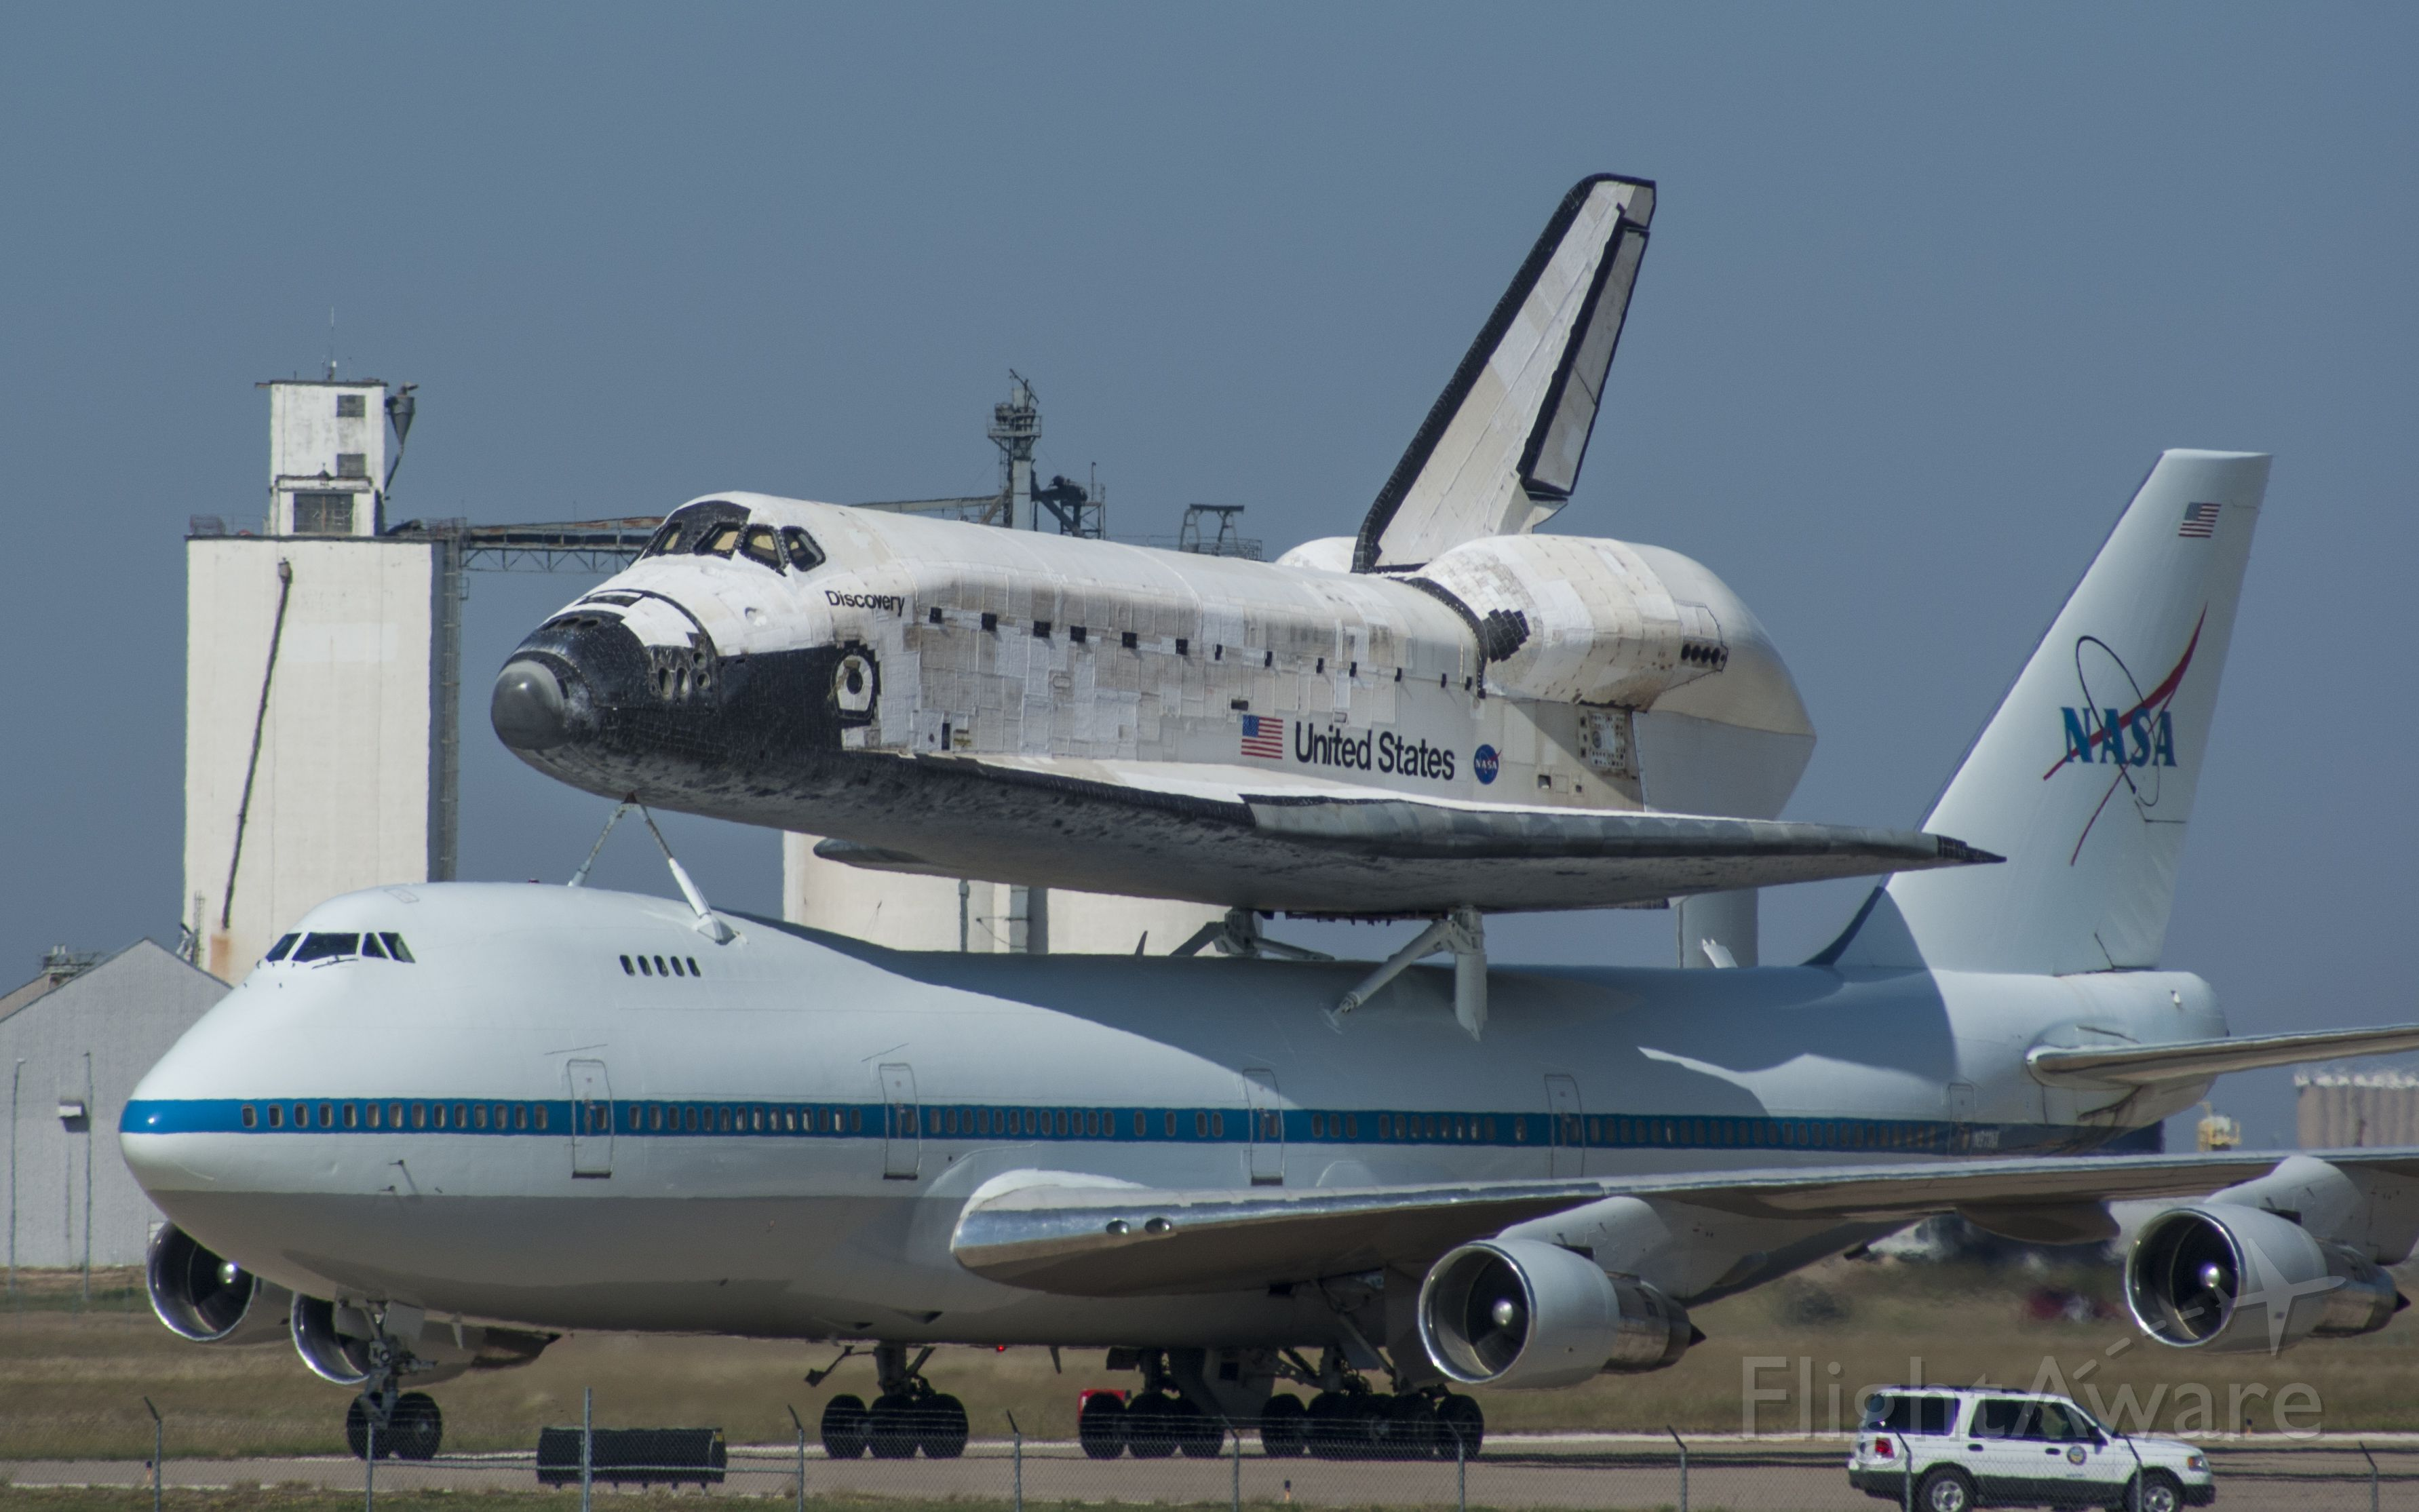 Boeing Shuttle Carrier (N911NA) - The space shuttle Discovery as it transits through Amarillo, Texas, back to Florida, on Sept. 20th, 2009.